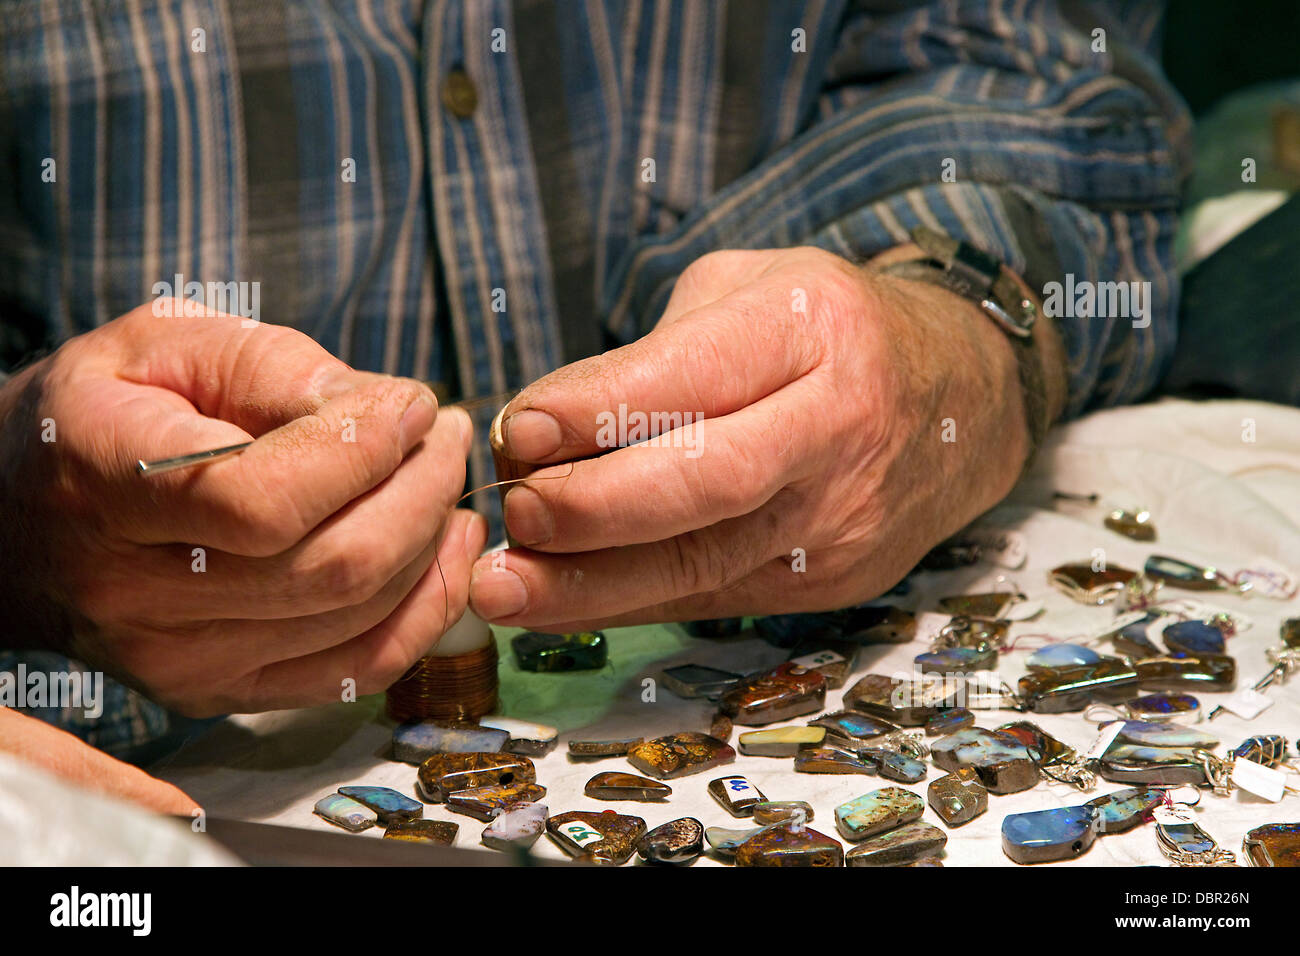 Artisan works with stone gems, close up of hands - Stock Image